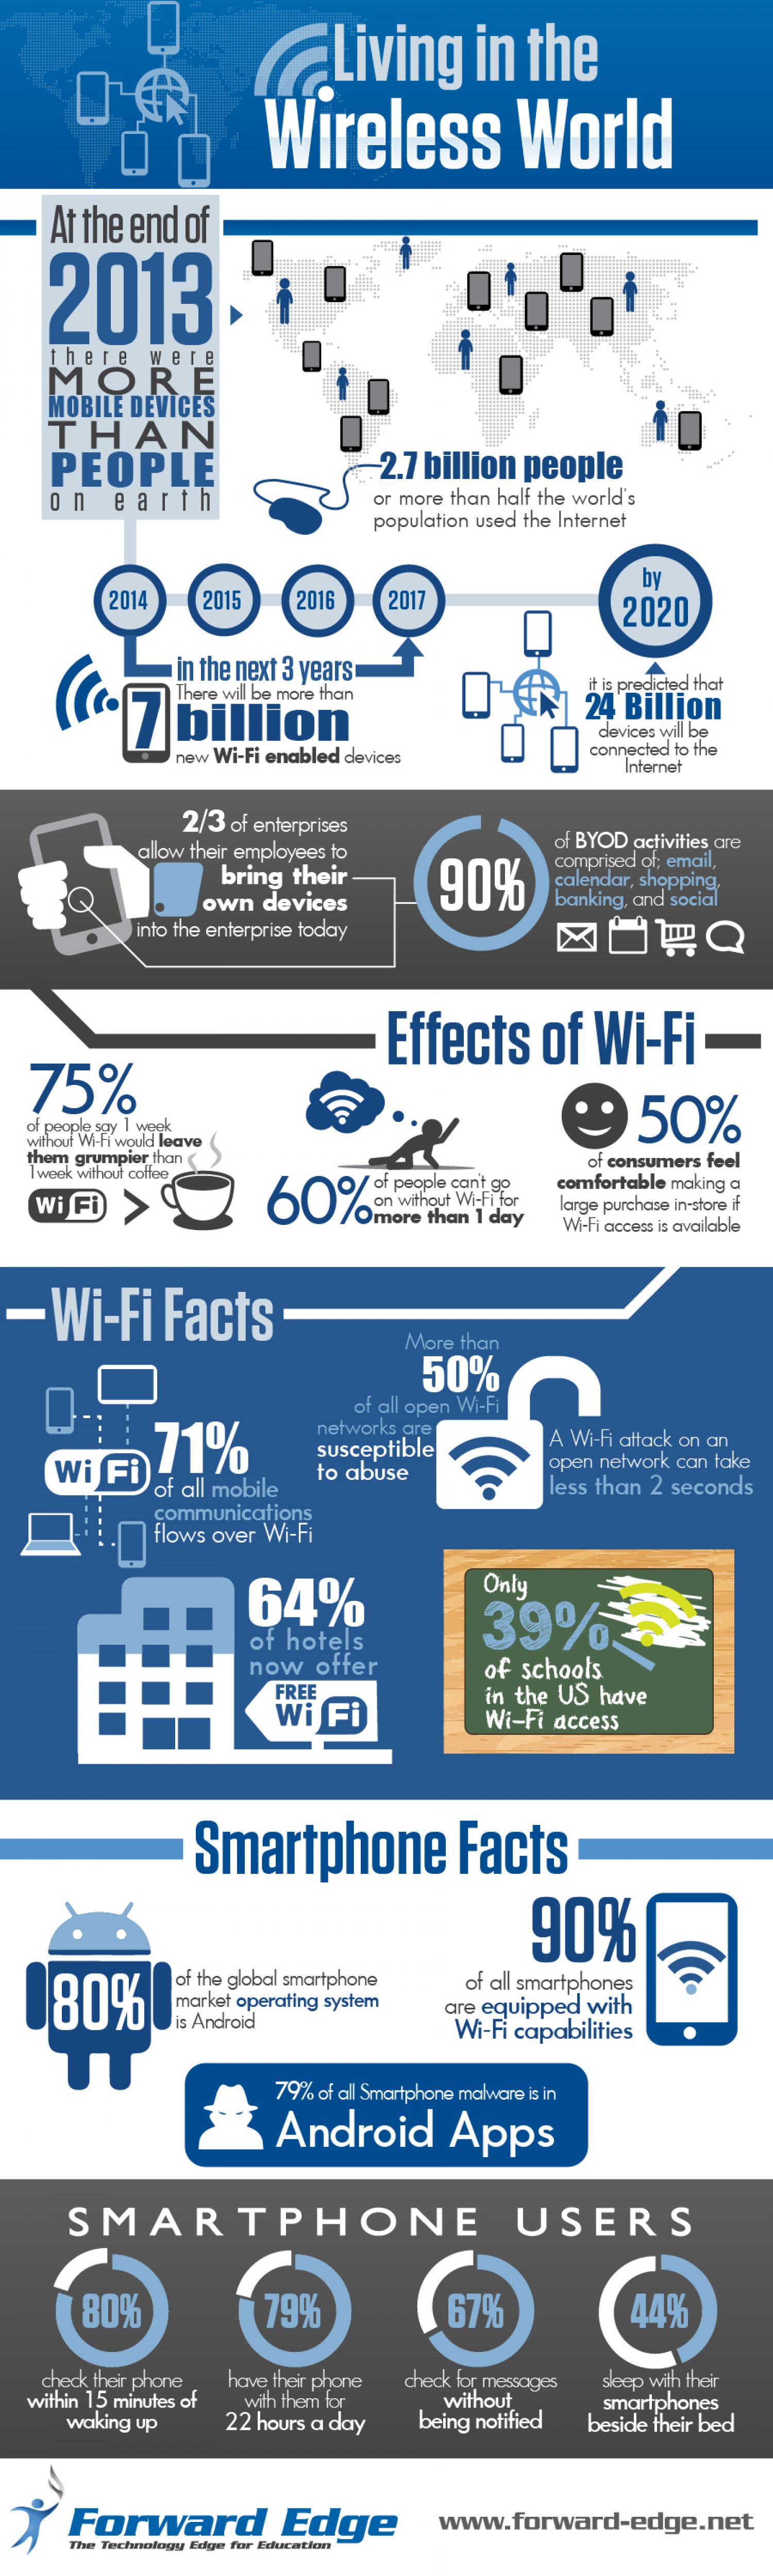 Living in the Wireless World Infographic